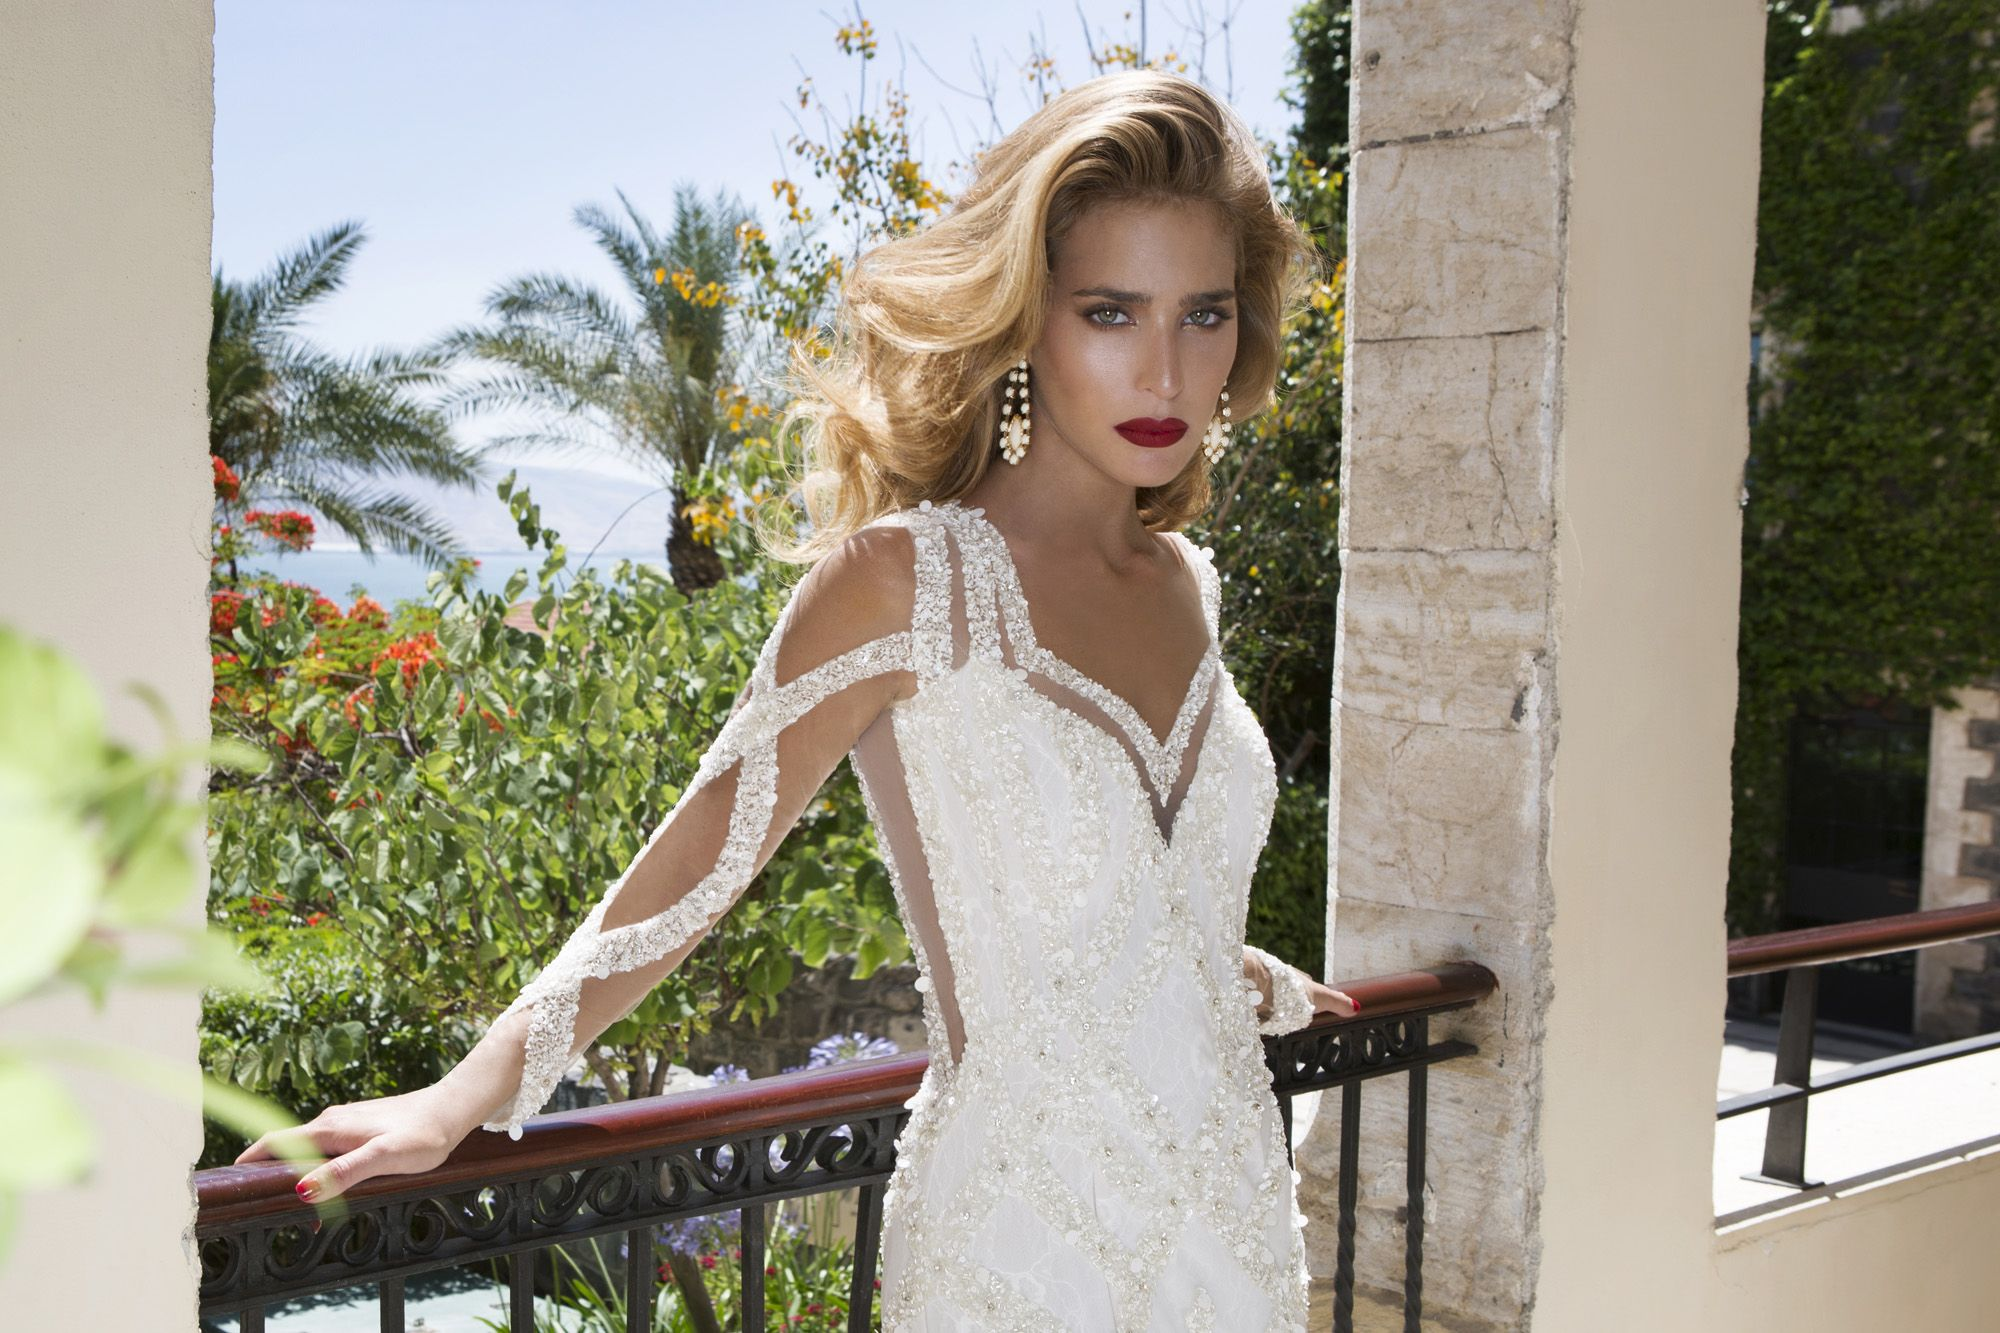 From the Nurit Hen Morning Glory Collection / DW